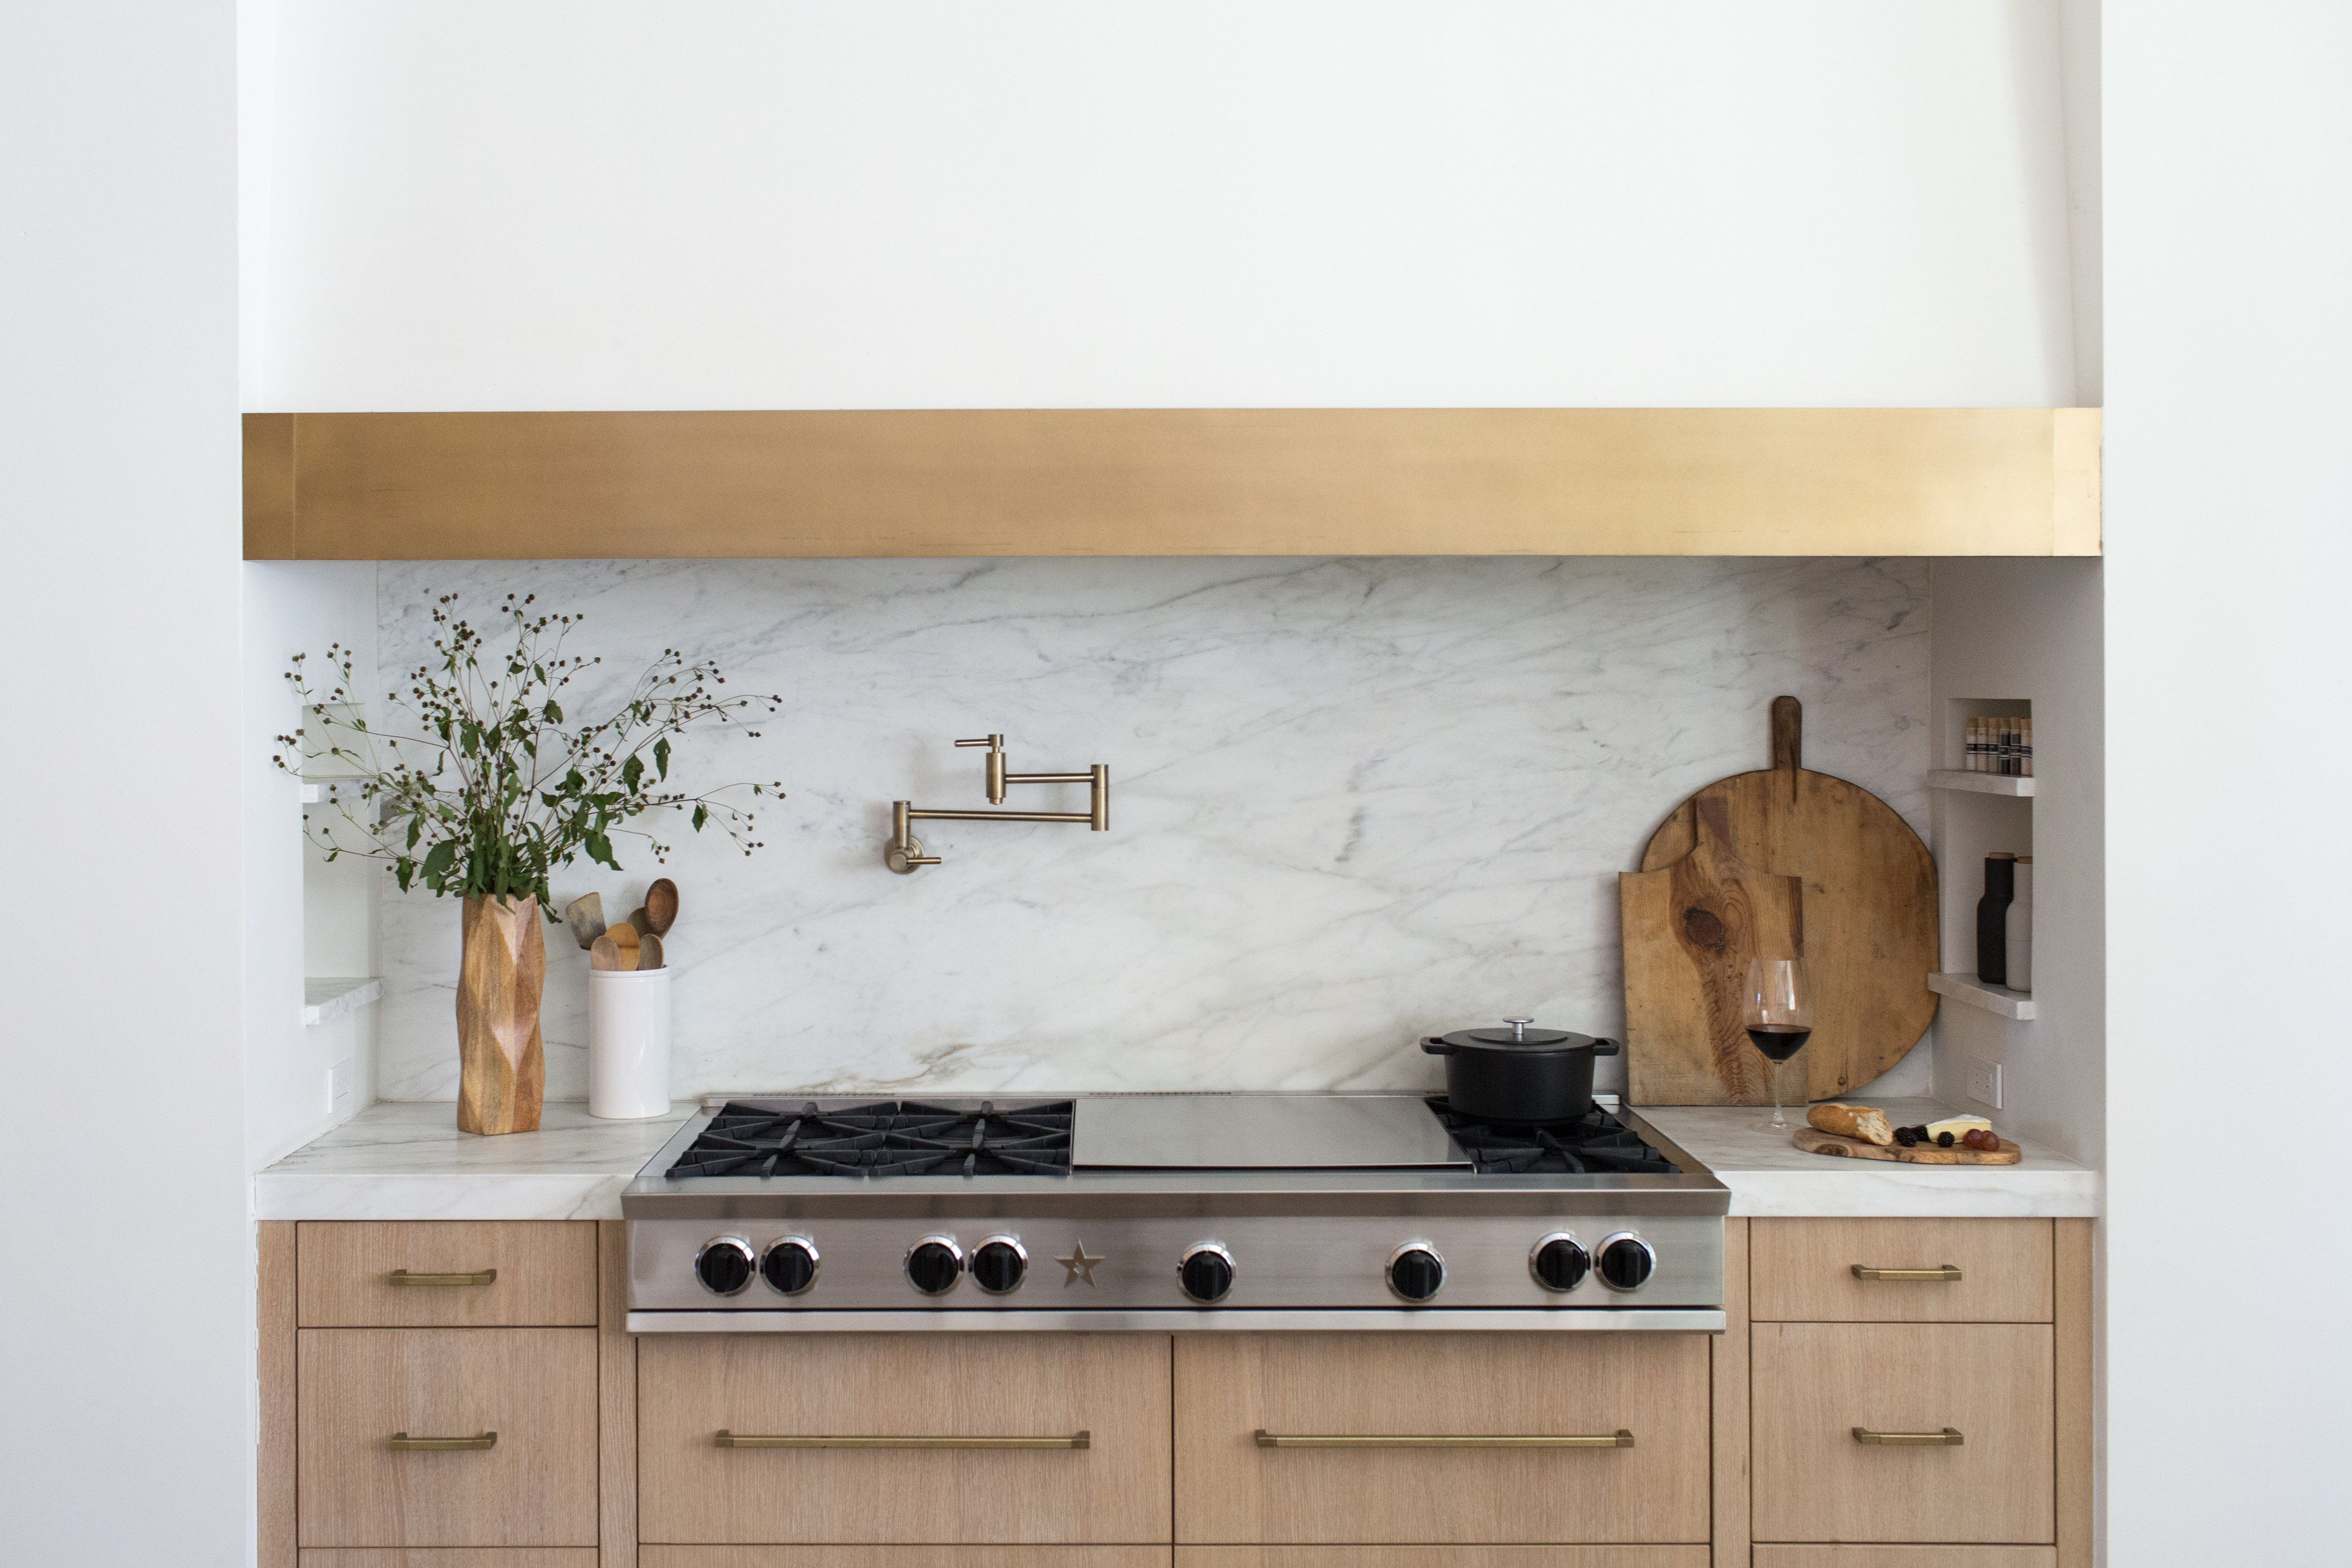 5 Kitchen Design Tips That Ll Make Your Space Feel Bespoke Kitchen Design Kitchen Cabinet Styles Upper Kitchen Cabinets